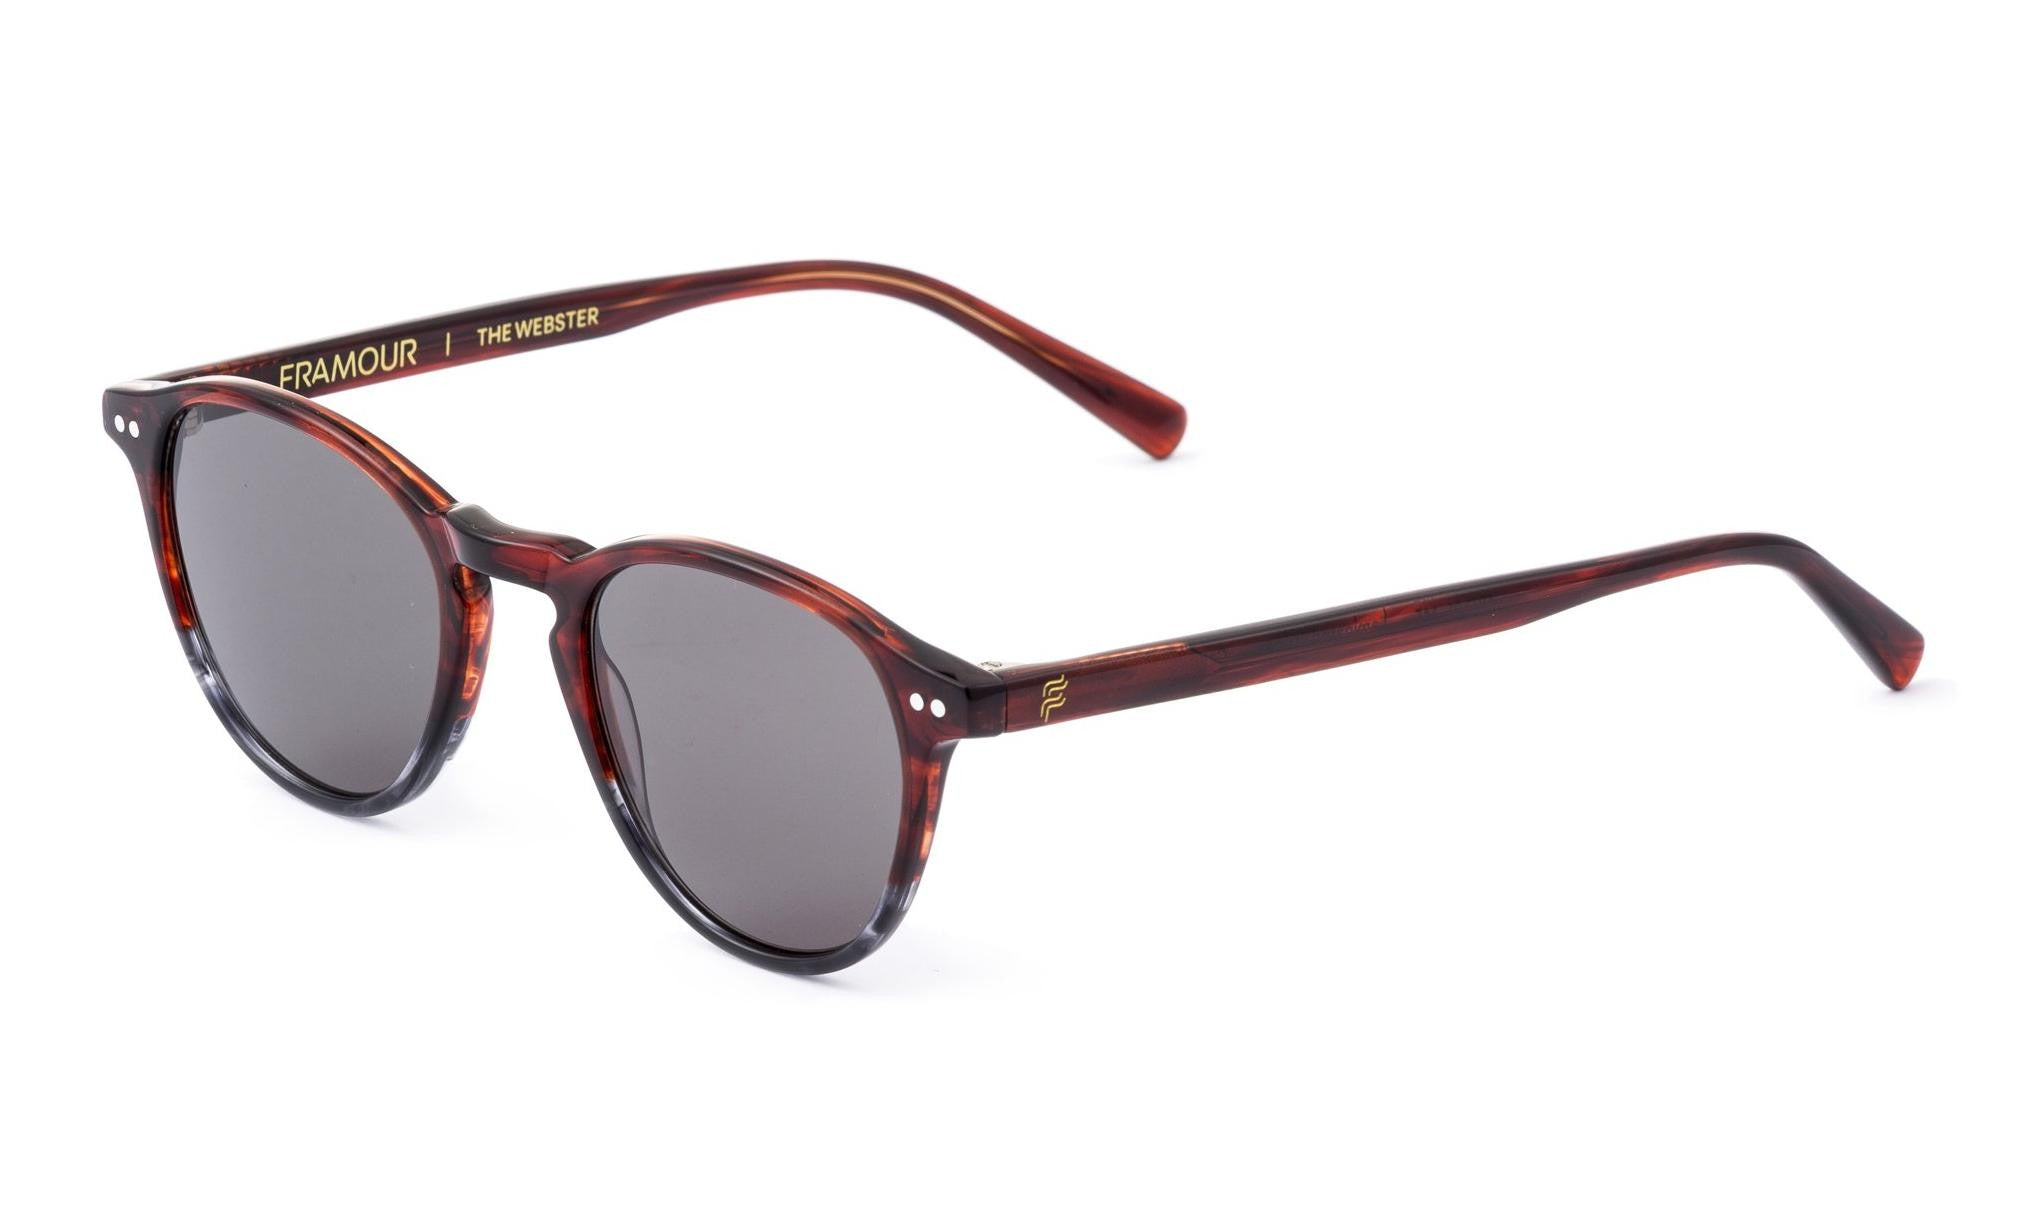 Occhiali da sole Framour Eyewear The Webster